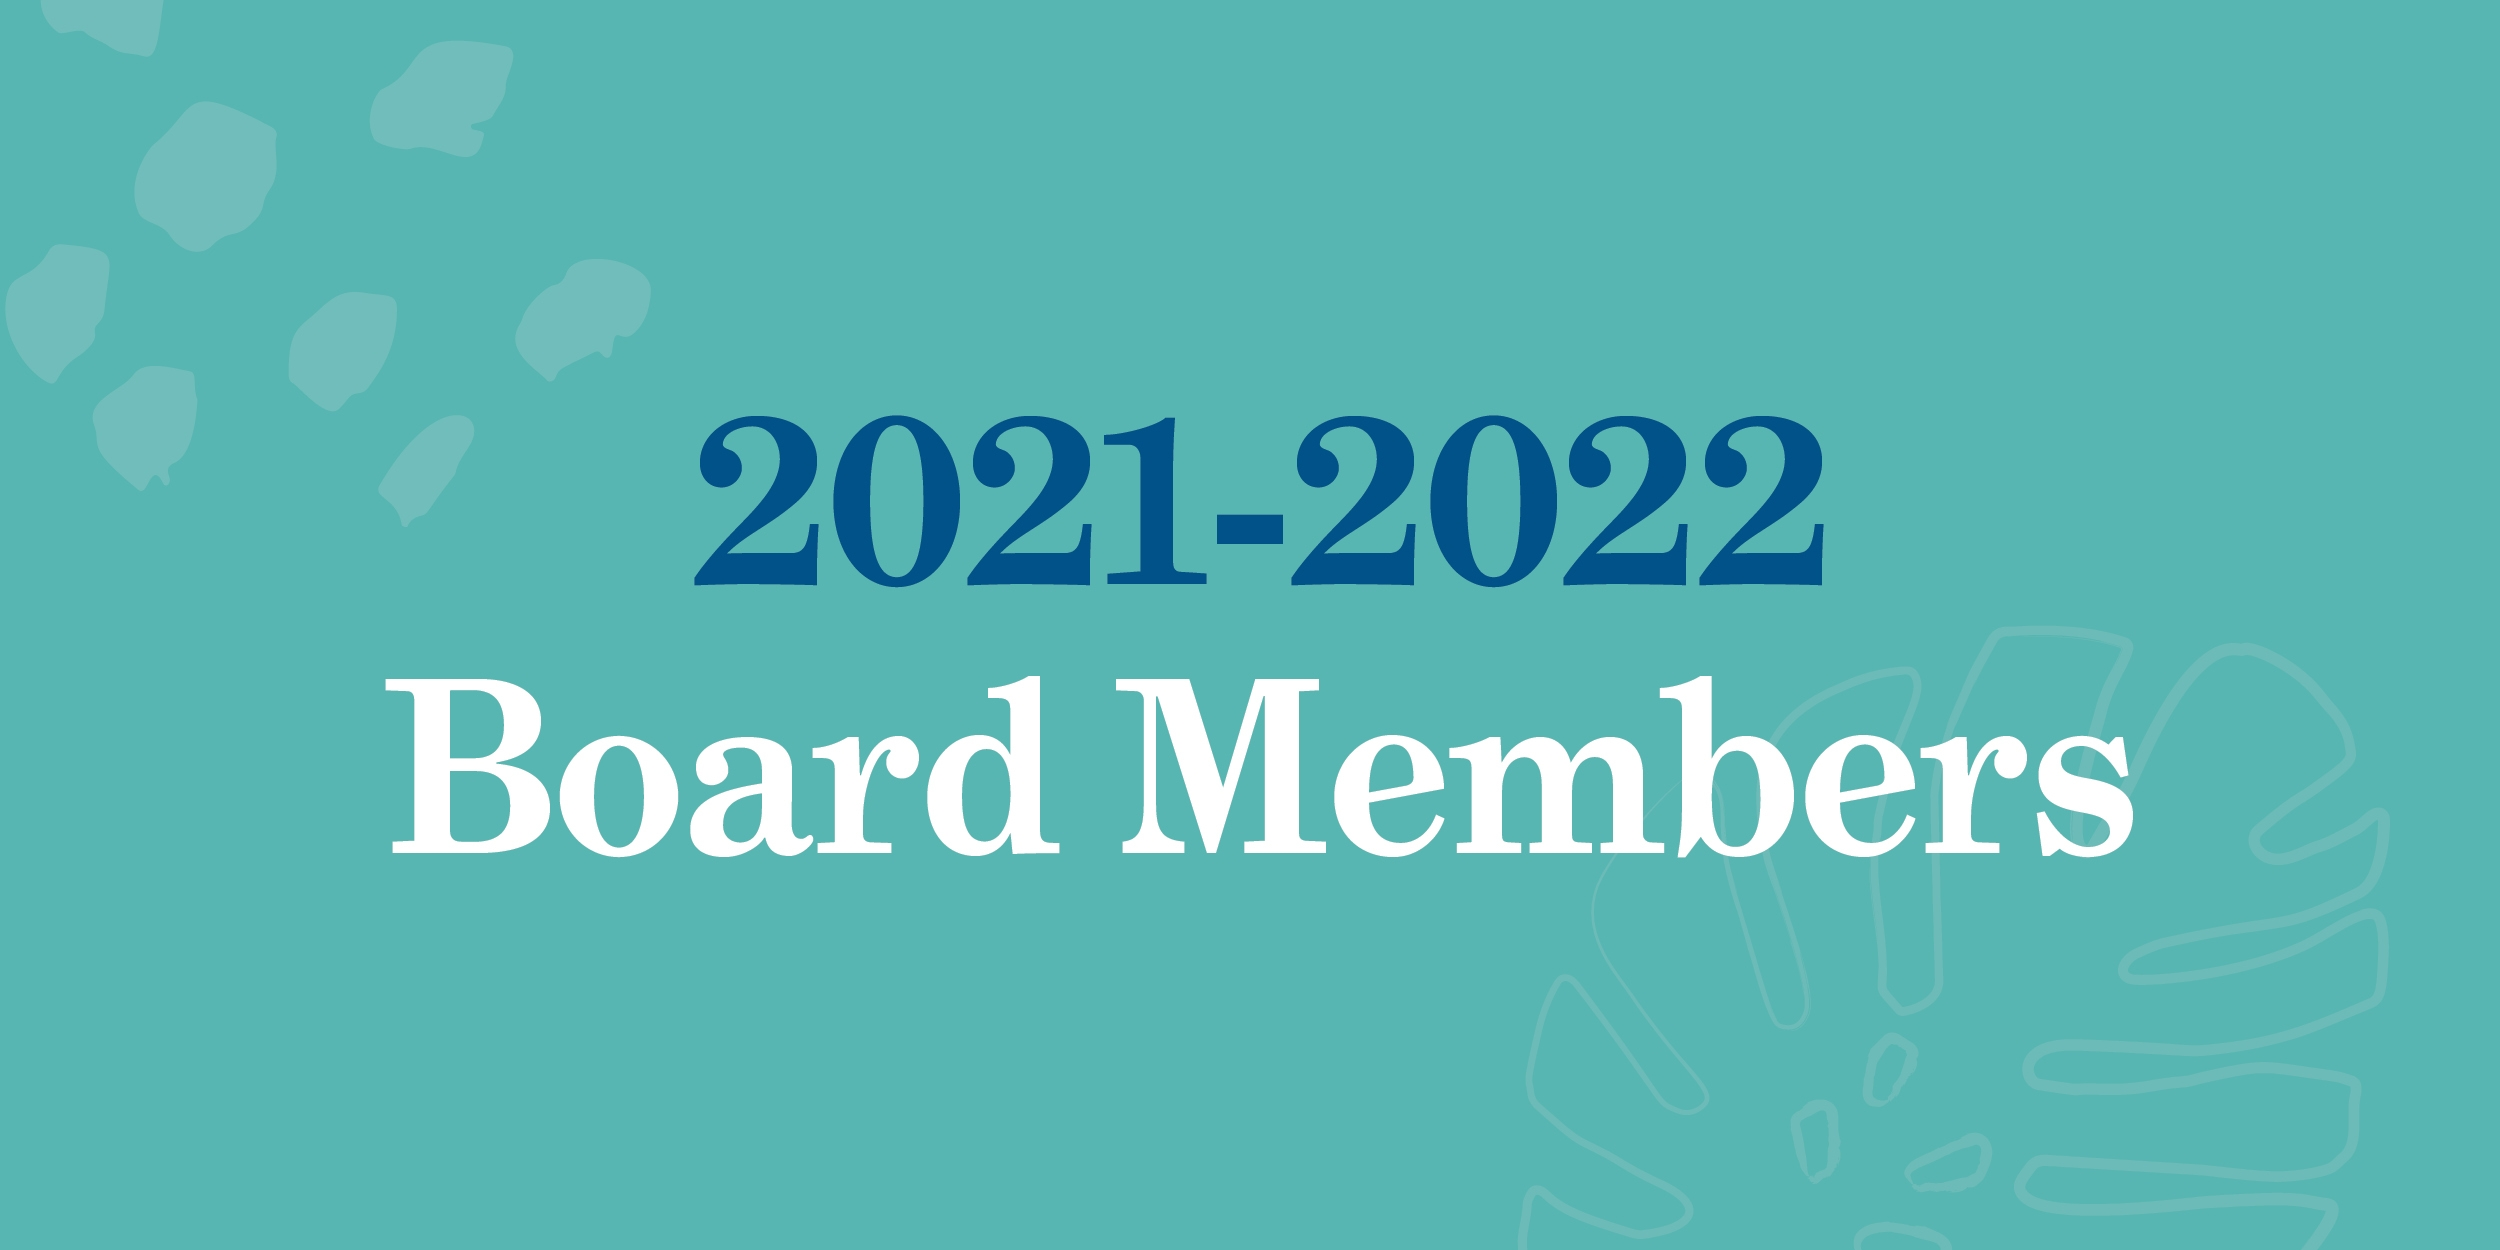 Board Members Announced for 2021-2022